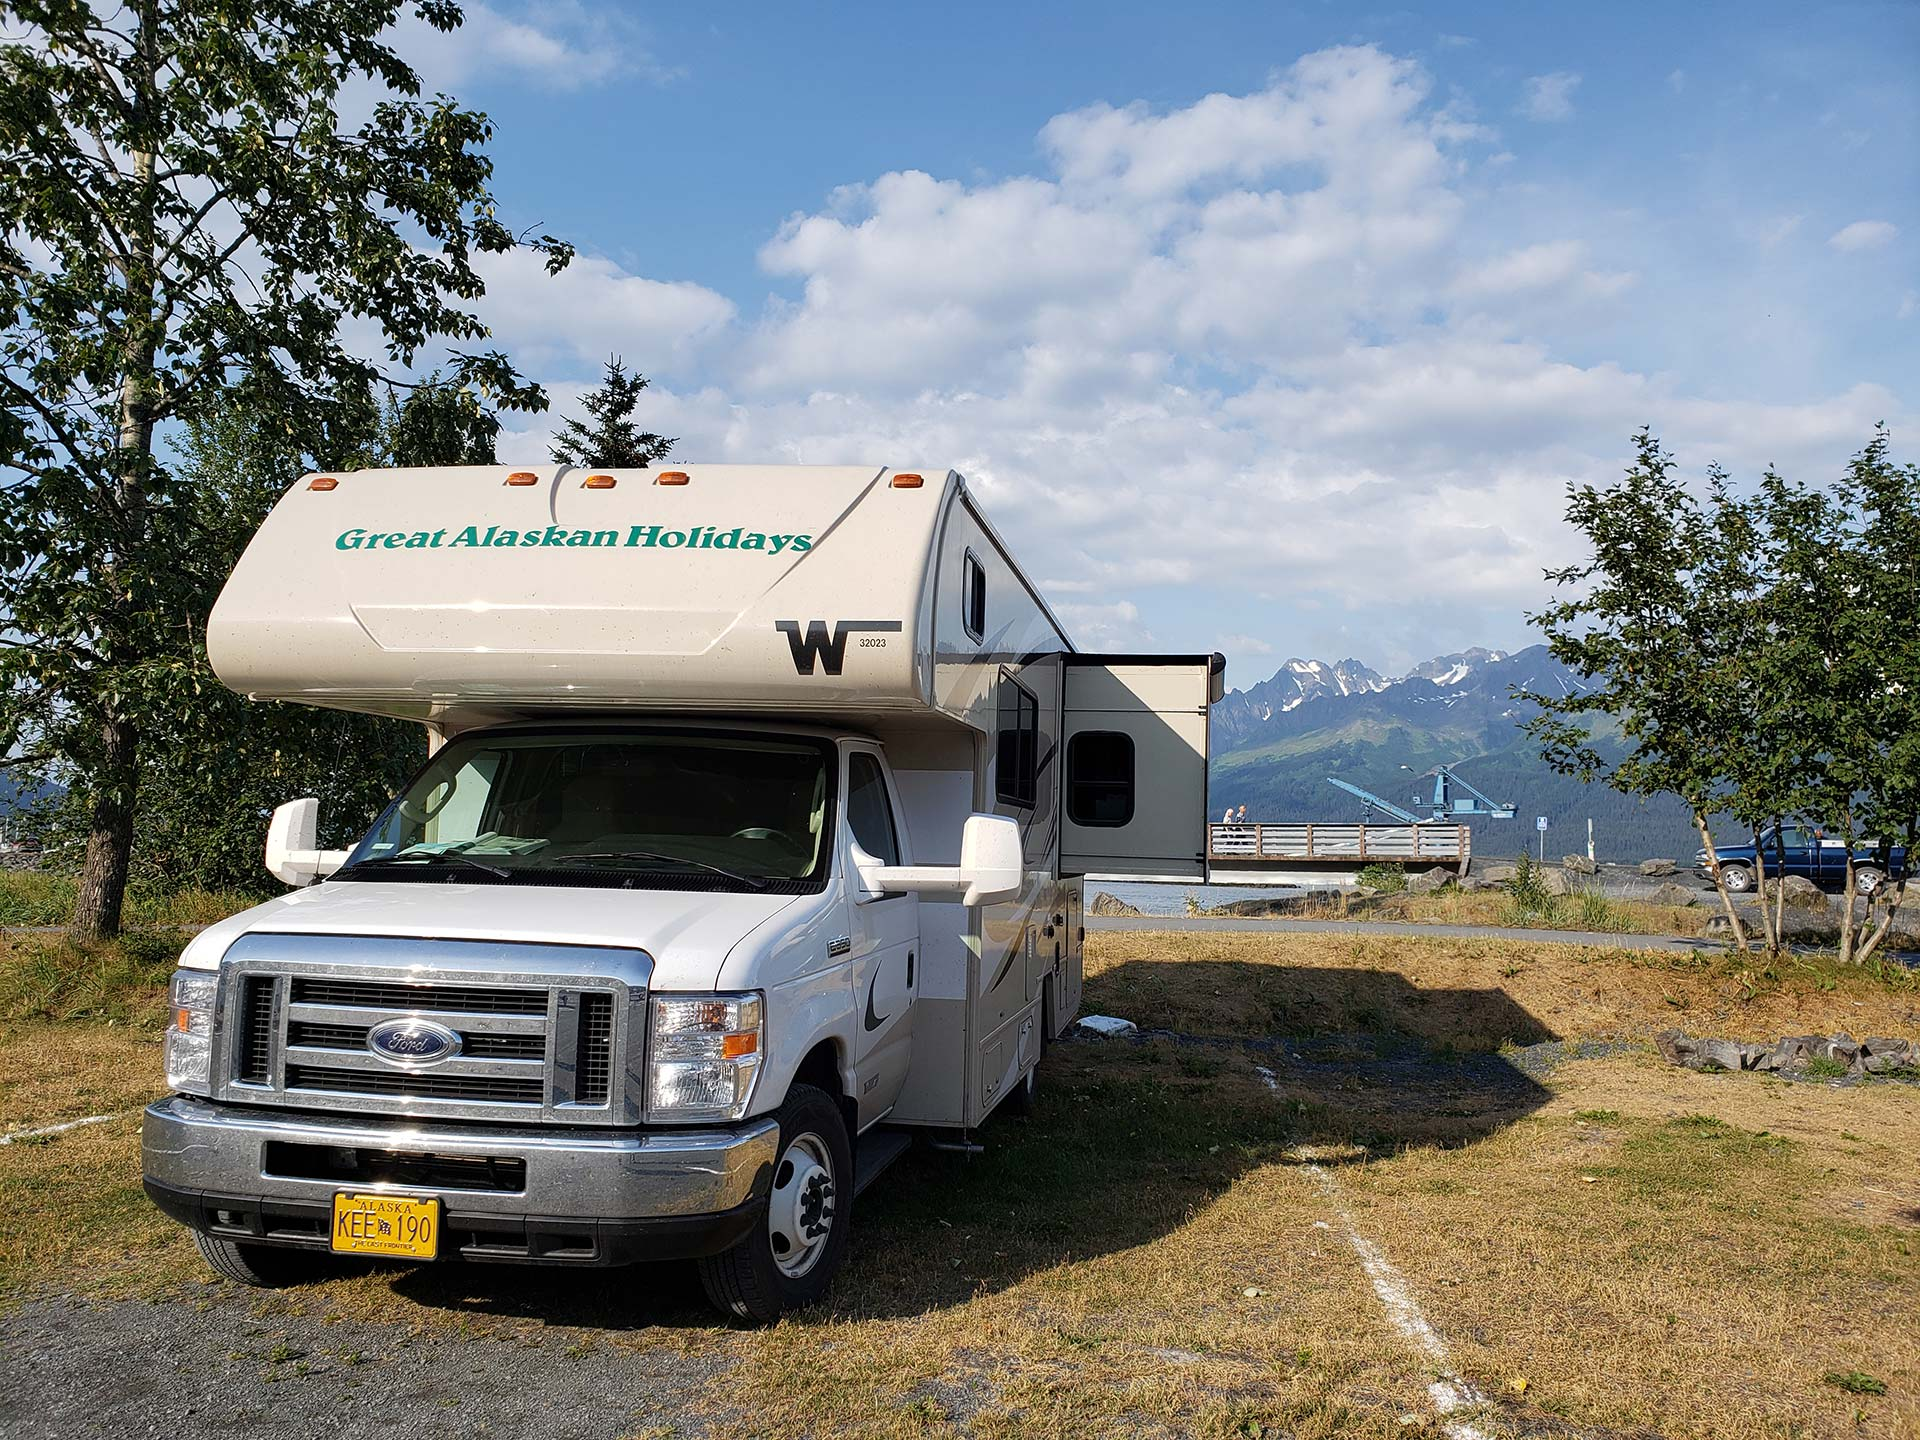 Camping at the City of Seward Campground by Susan Sasse